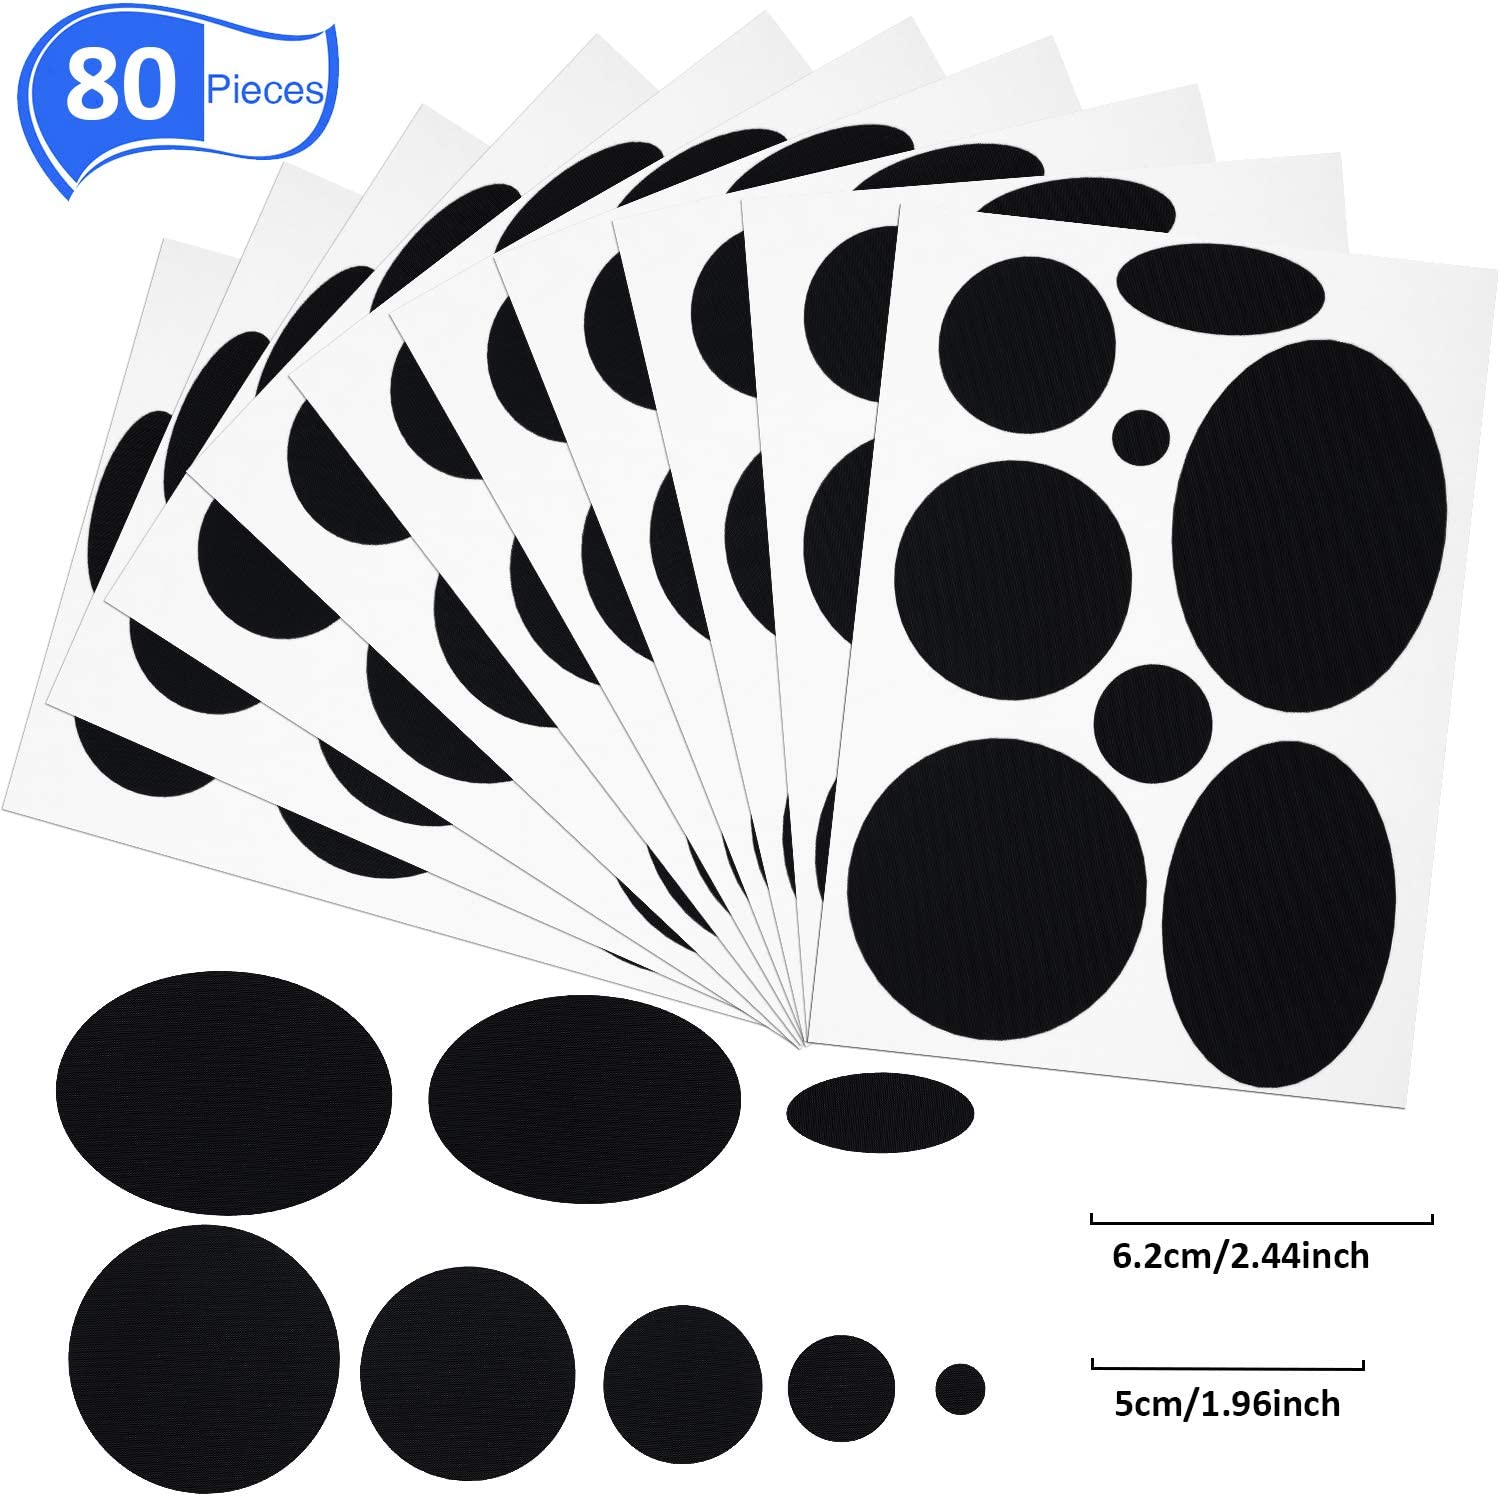 80 Pieces Black Down Jacket Patches Nylon Repair Tape Self-Adhesive Repair Patch with 8 Sizes for Jacket Tent Outerwear Repair, Round and Oval Shape